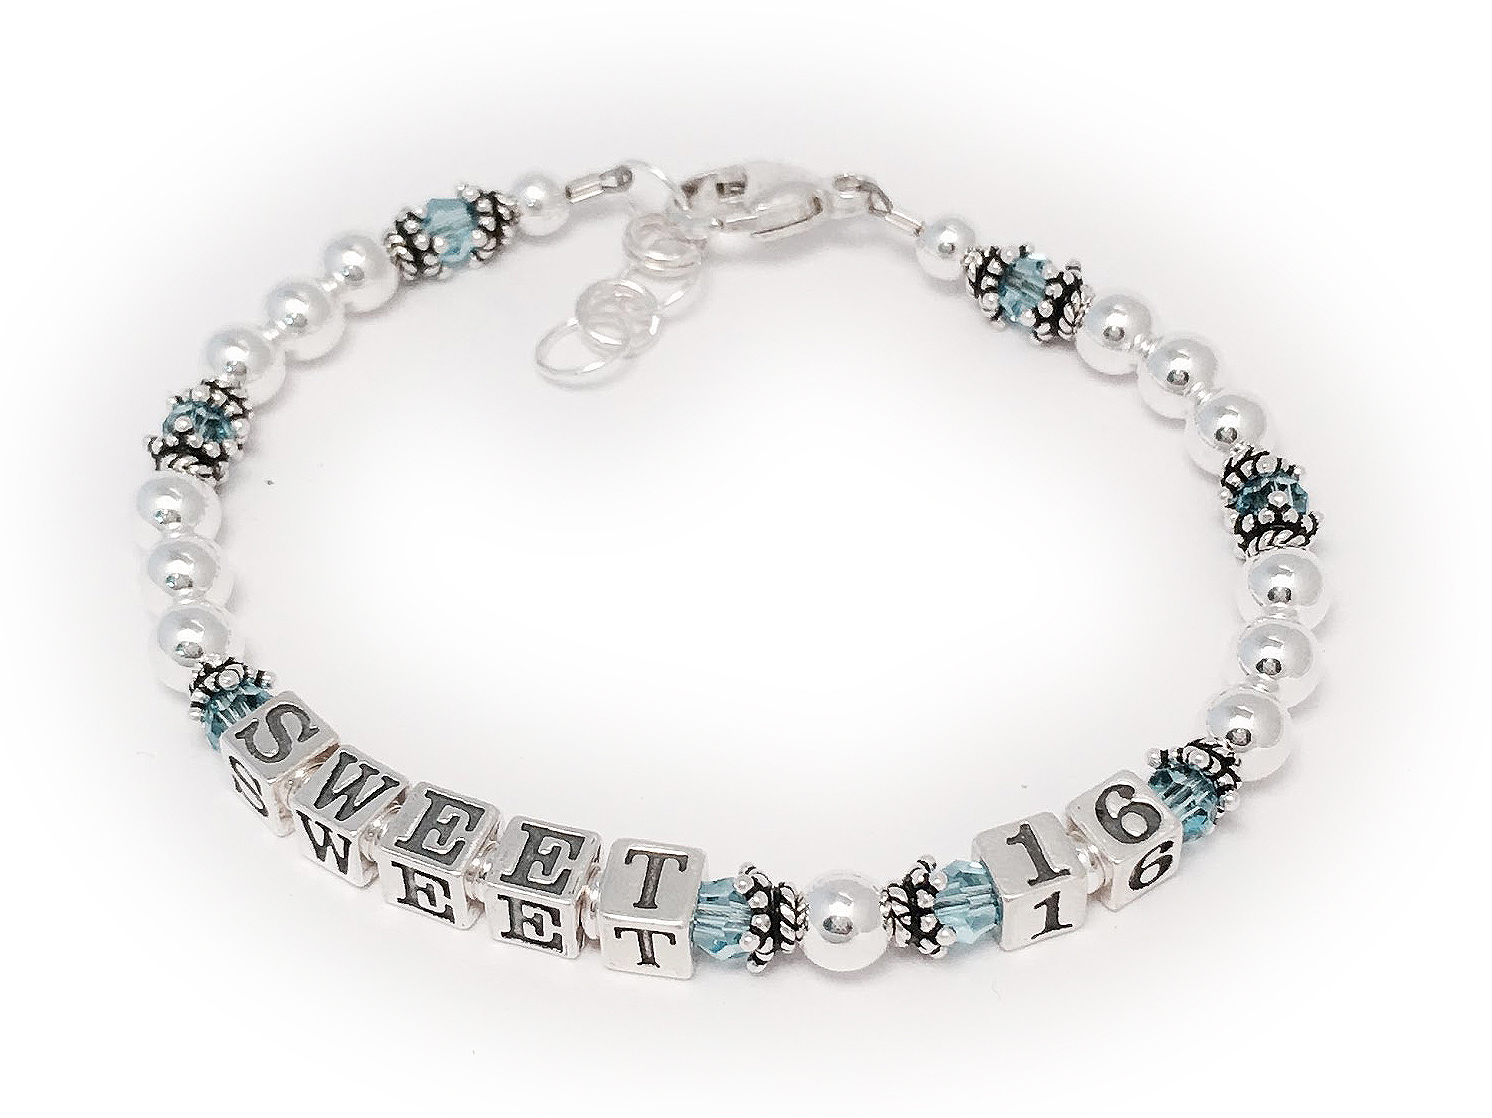 DBL-MB-4  Sweet 16 Bracelet with March or Aquamarine Birthstones  This Sweet 16 Bracelet is shown with March or Aquamarine Birthstone Colored Swarovski Crystals. They added a lobster clasp with an extension so it was sure to fit. That is an option in the Clasp drown-down menu.